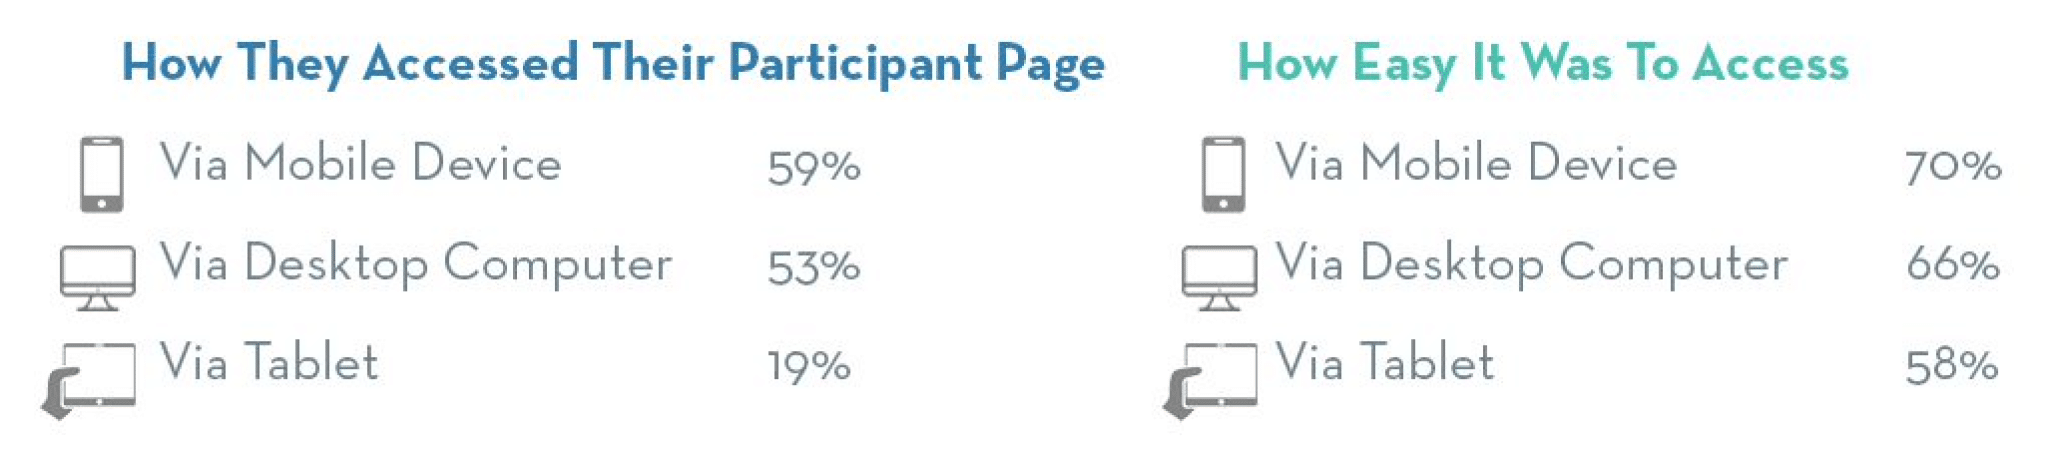 How peer-to-peer participants access their participant page and how easy it is for them according to the OneCause Social Fundraiser study